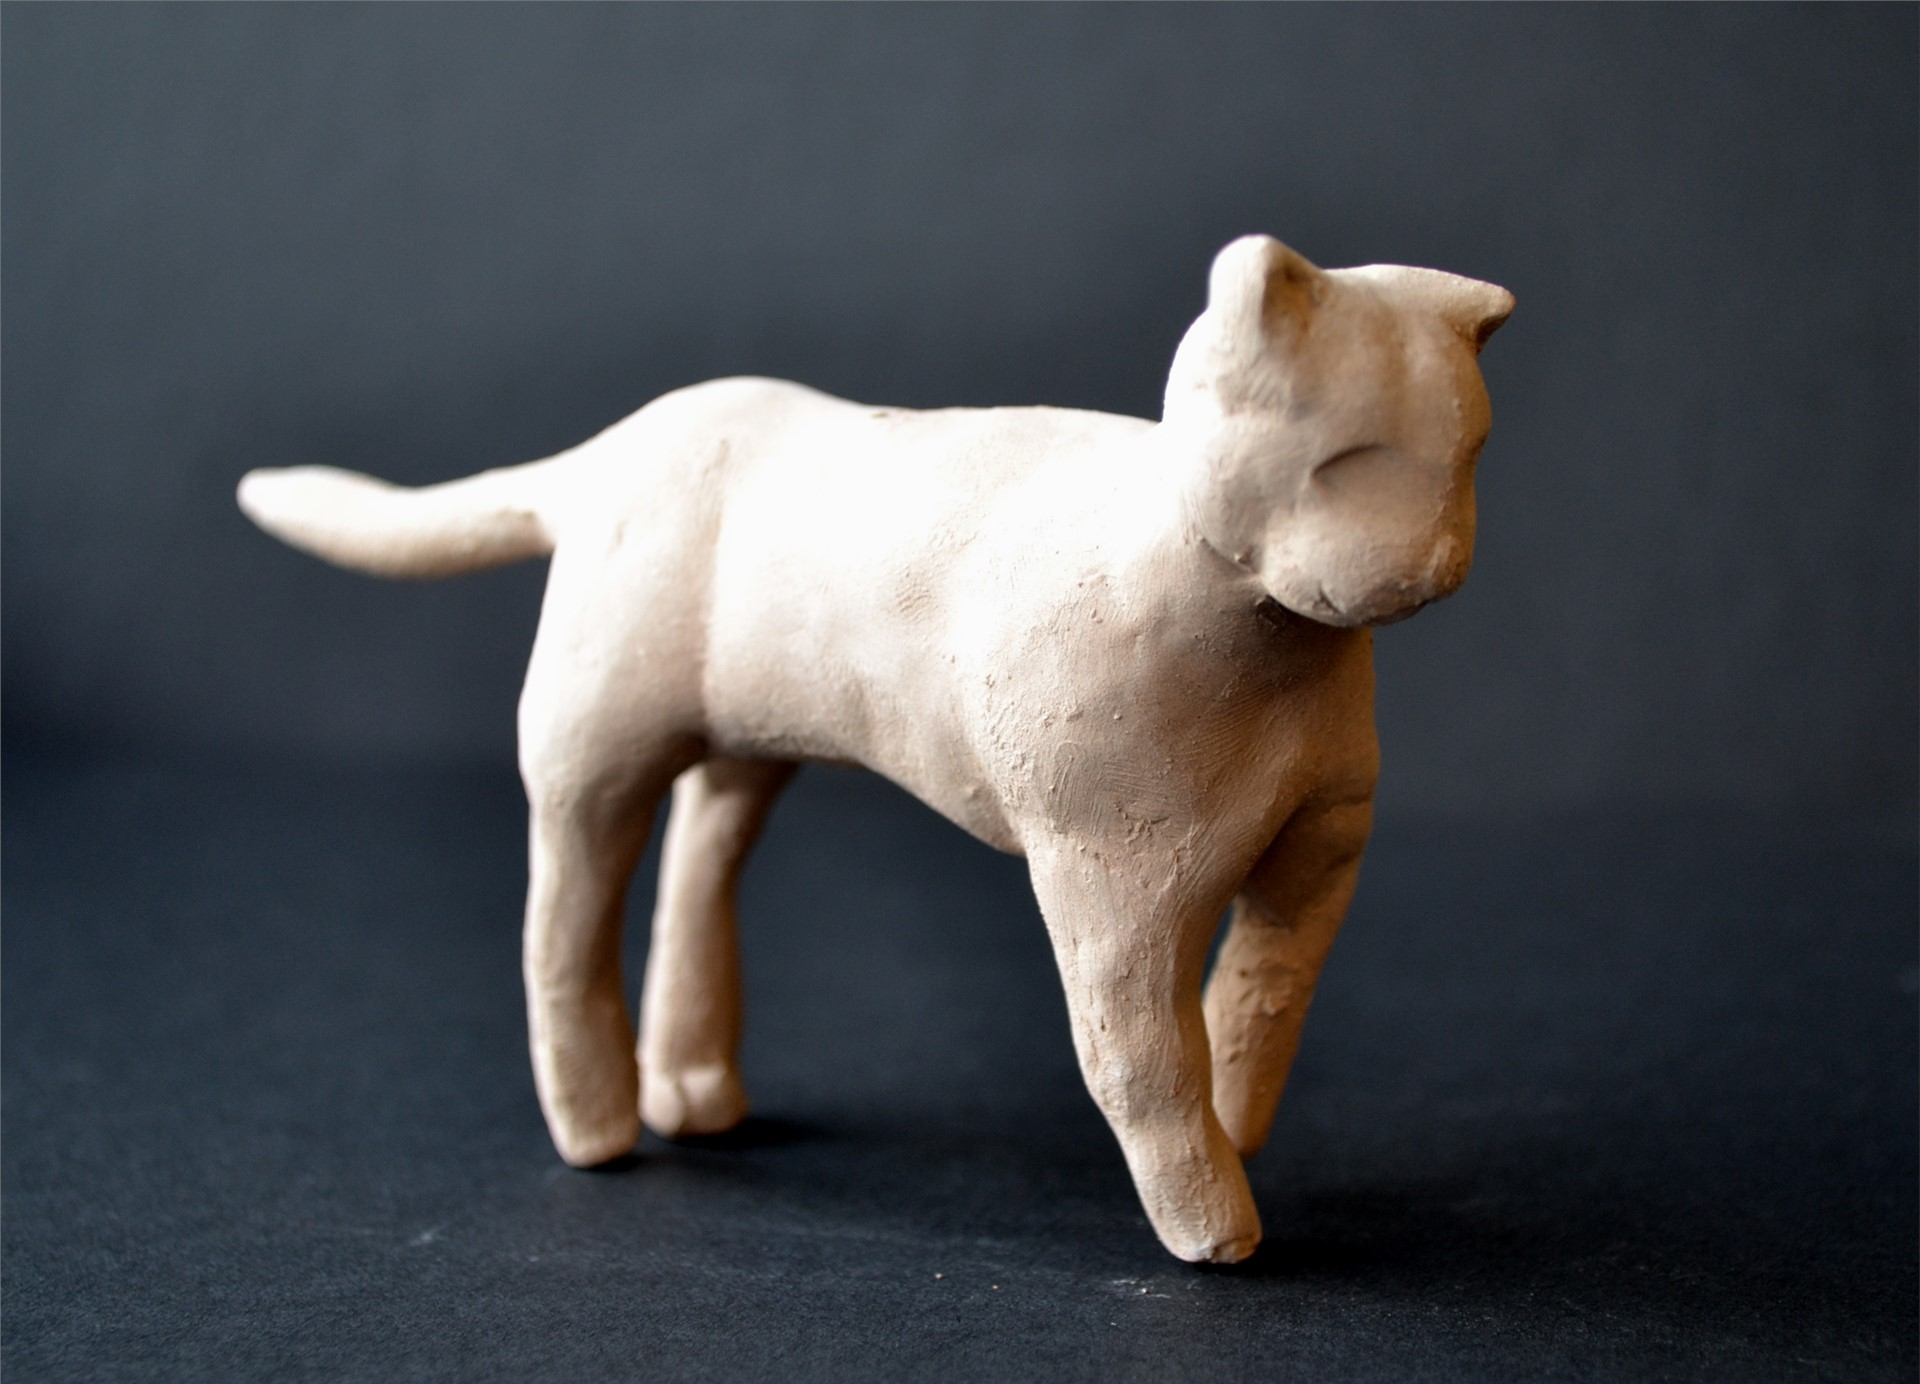 RACHEL ZOON, Ceramic Cat, Independent Study, 3 x 5 x 1.25, 2015